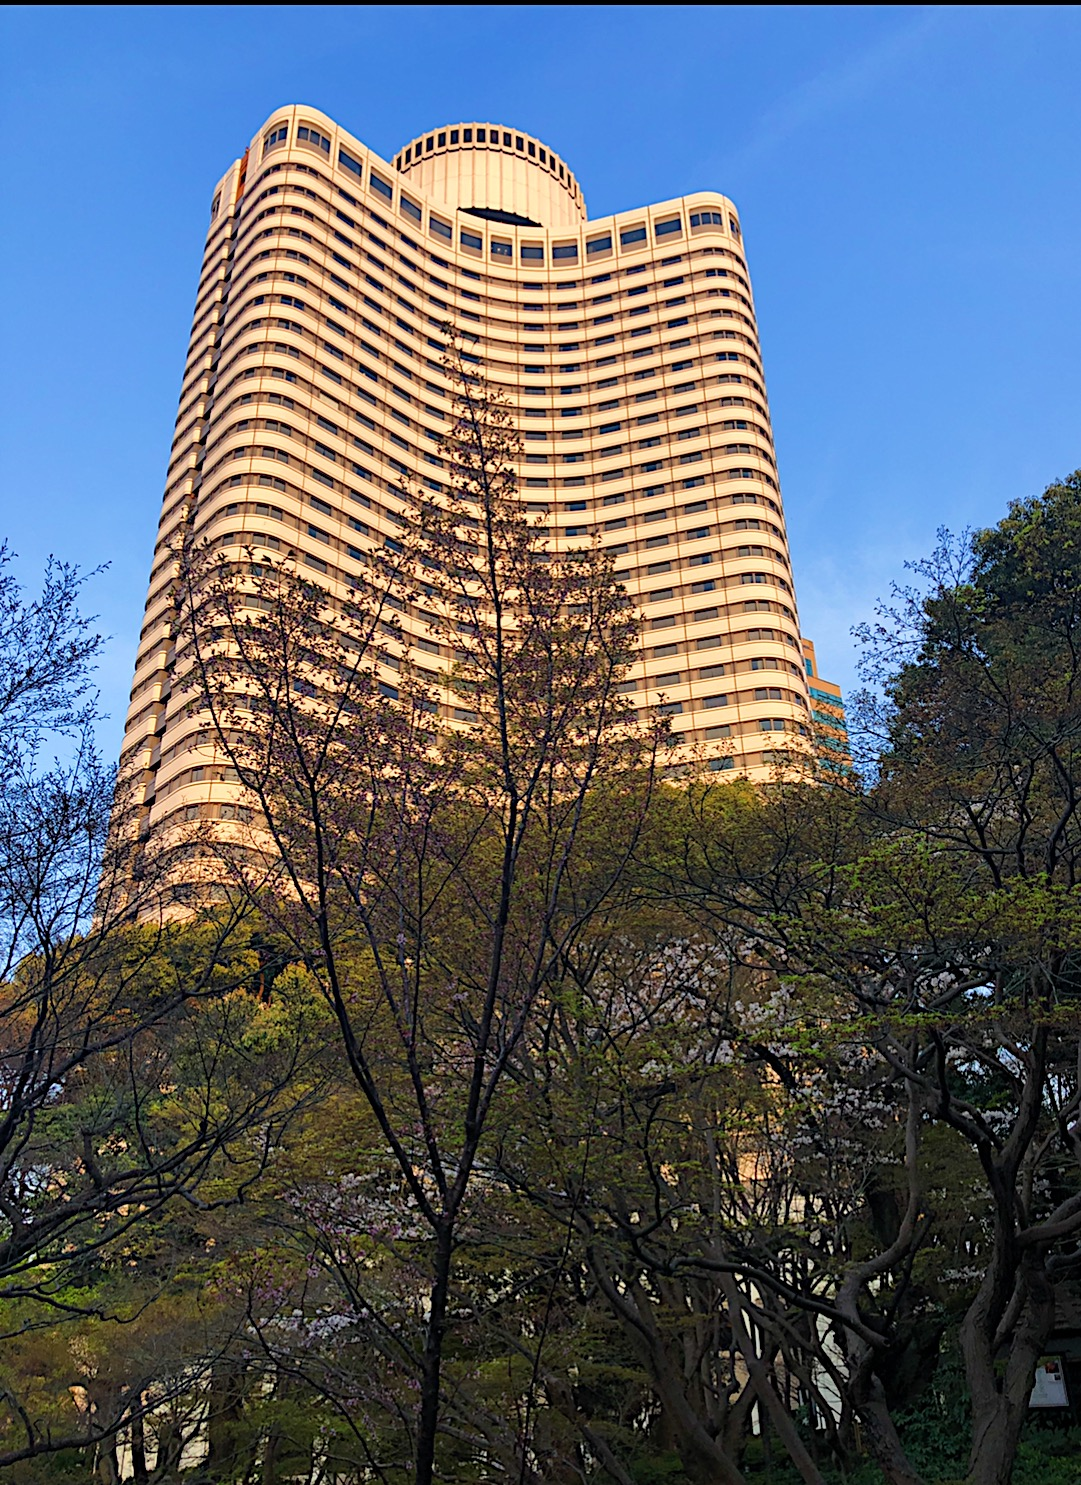 Hotel New Otani, The Main Garden Tower in Tokyo